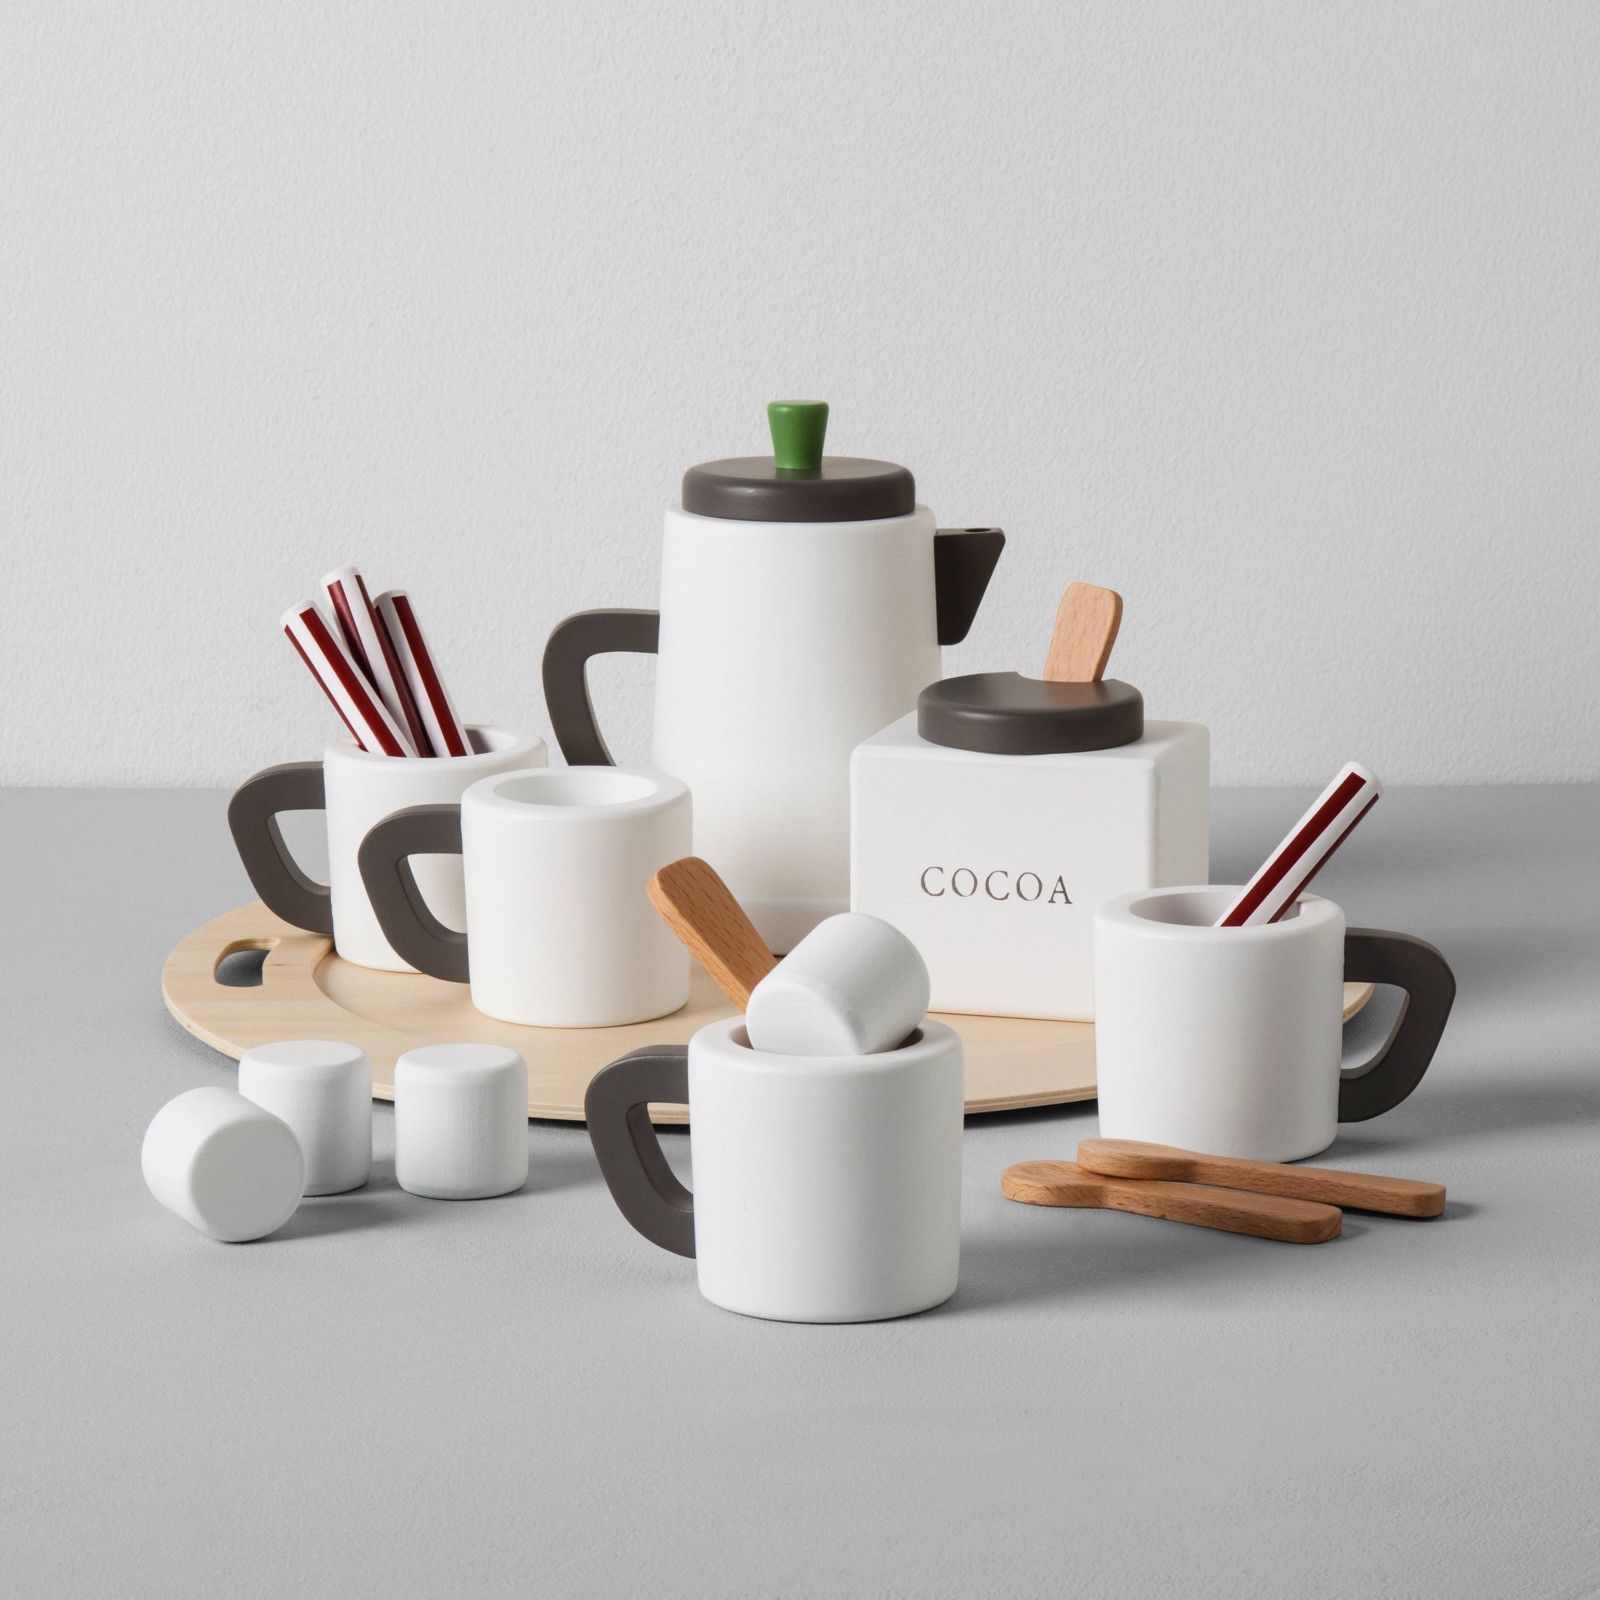 Hearth and hand wooden toy hot cocoa set magnolia target